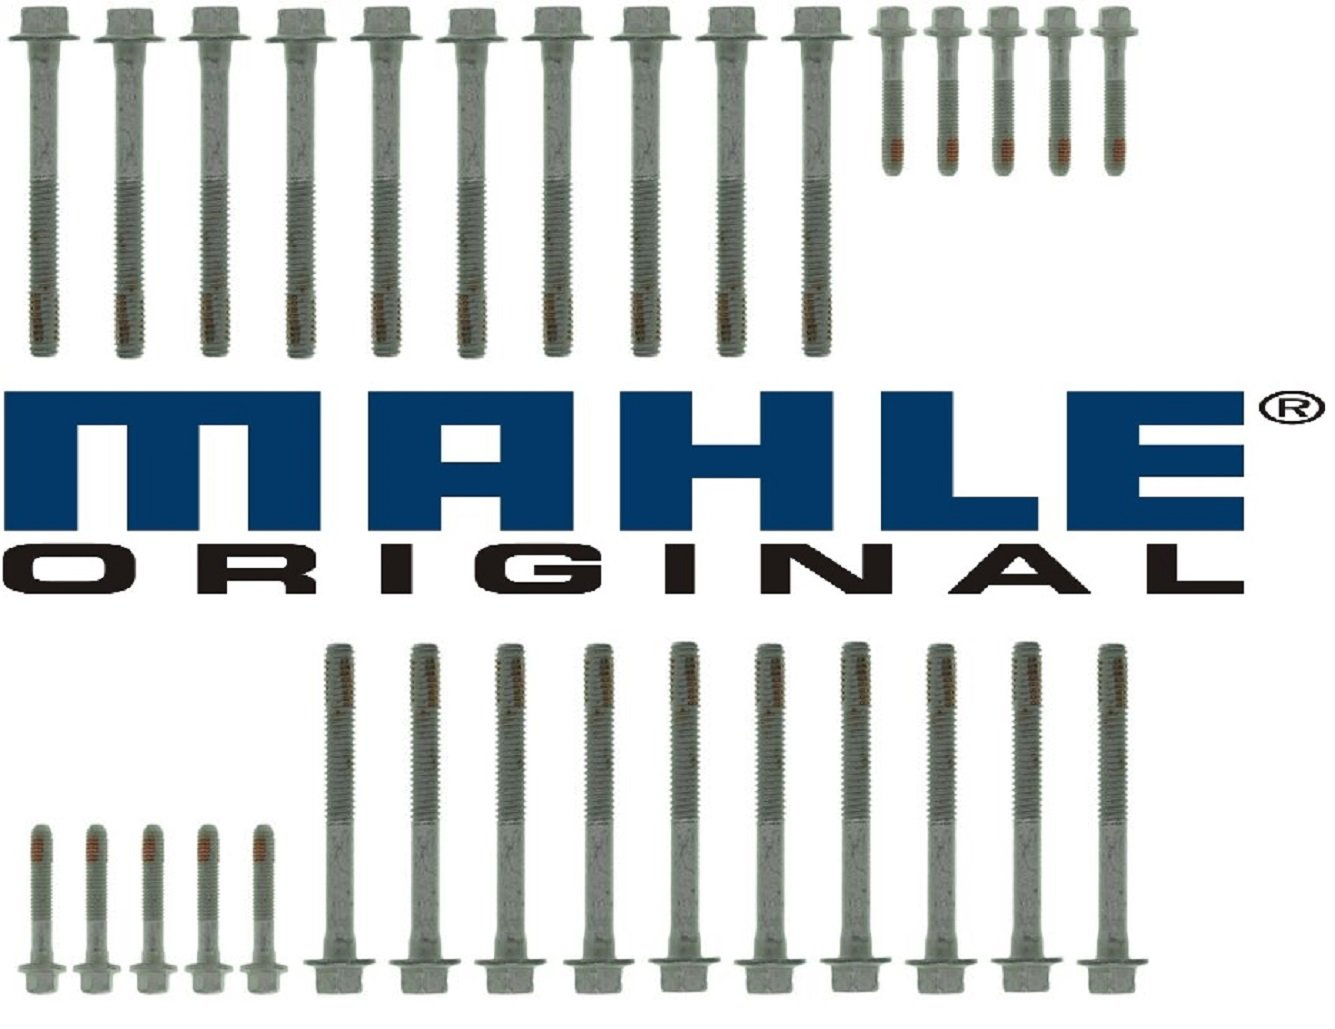 Mahle Original Head Gasket Set /& New Bolts compatible with 2002-2007 Chevy GMC TRUCKS 6.0 6.0L LQ4 VORTEC VINU orN Formerly Victor Reinz